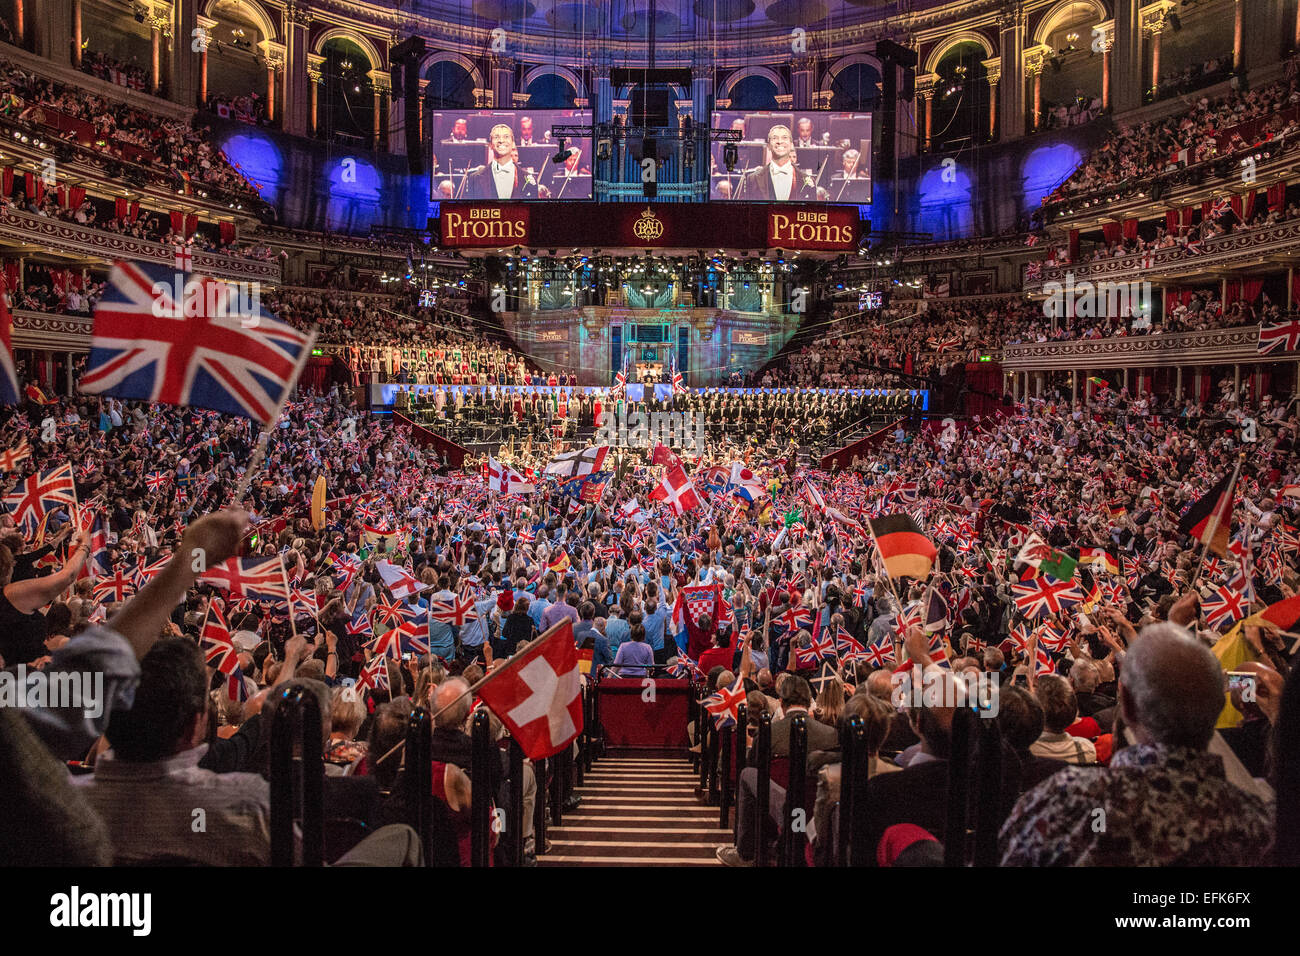 Last Night of the Proms at Royal Albert Hall, London, UK. - Stock Image